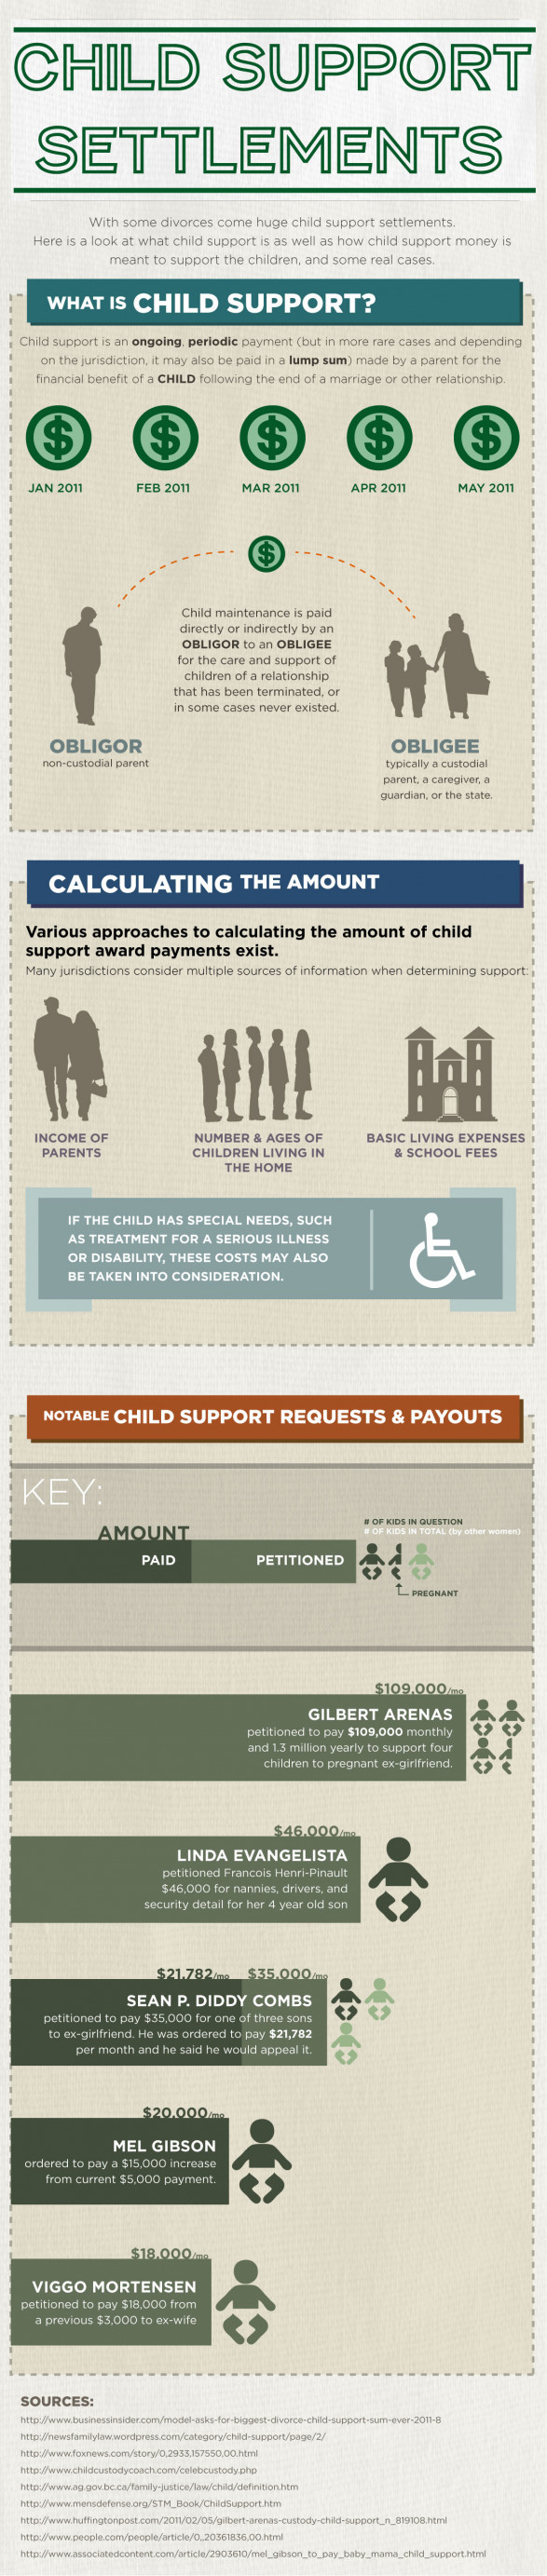 Child Support Settlements